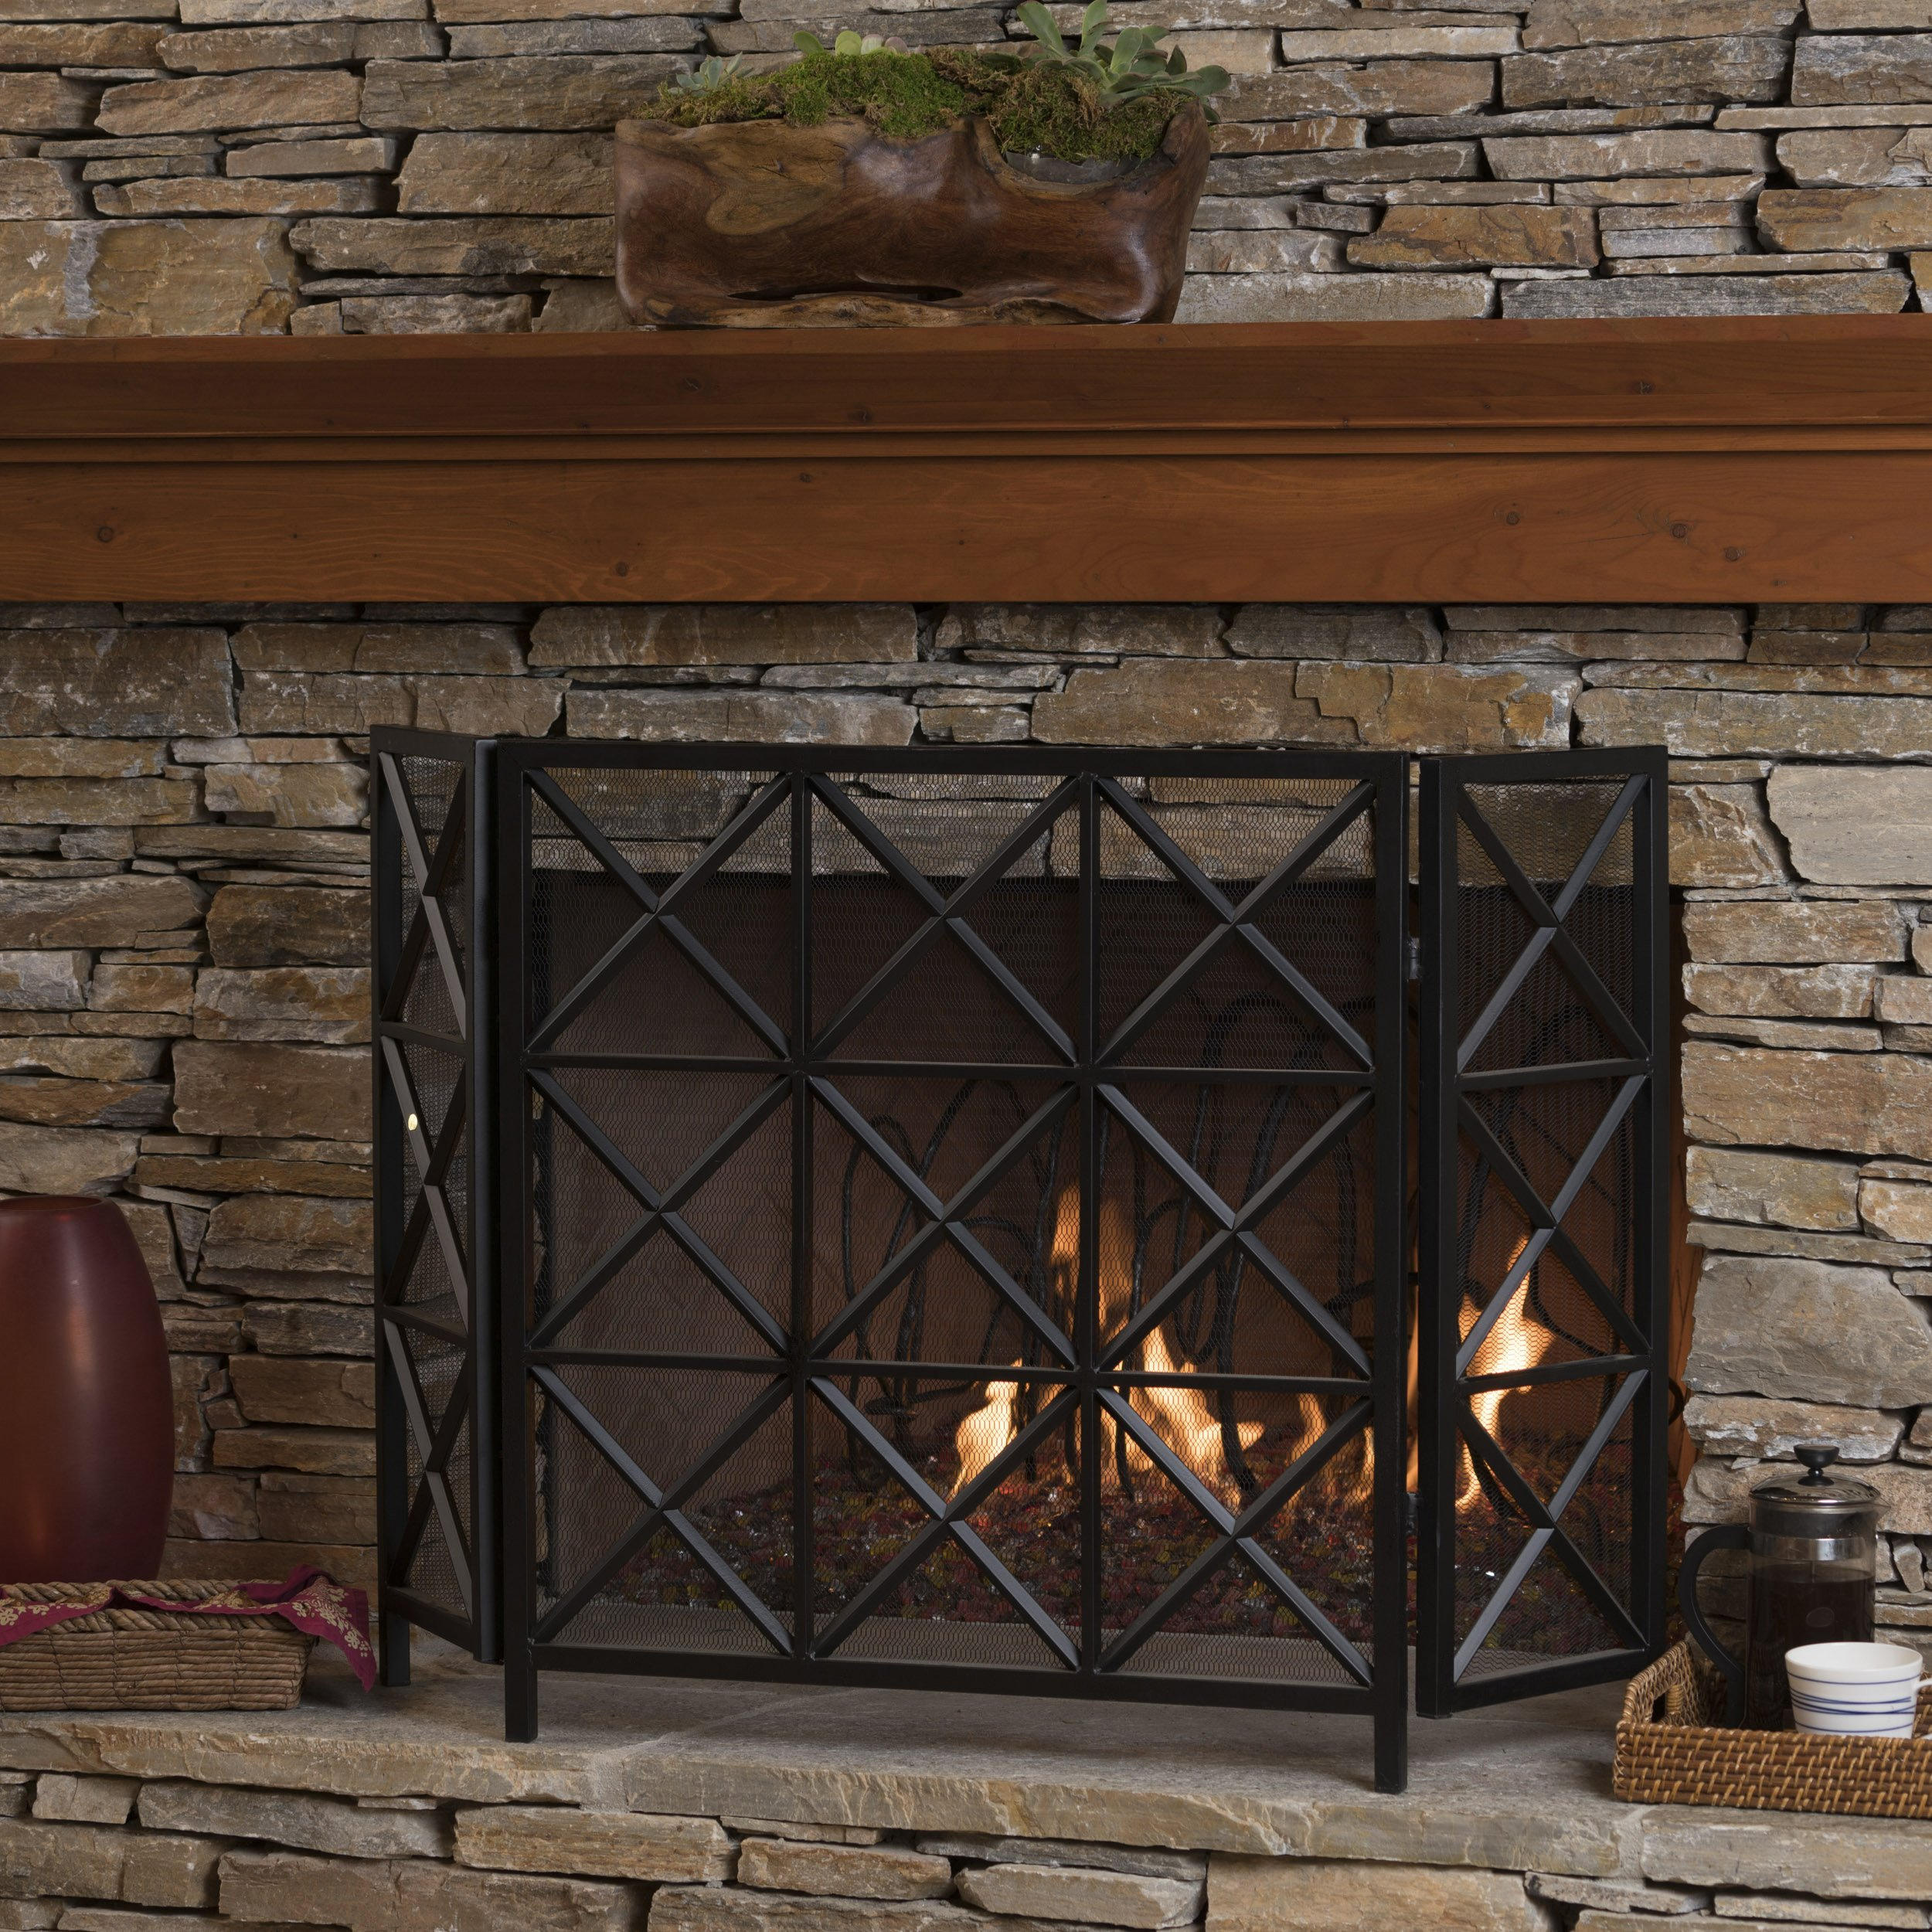 Christopher Knight Home Mandralla 3 Panelled Black Iron Fireplace Screen by Christopher Knight Home